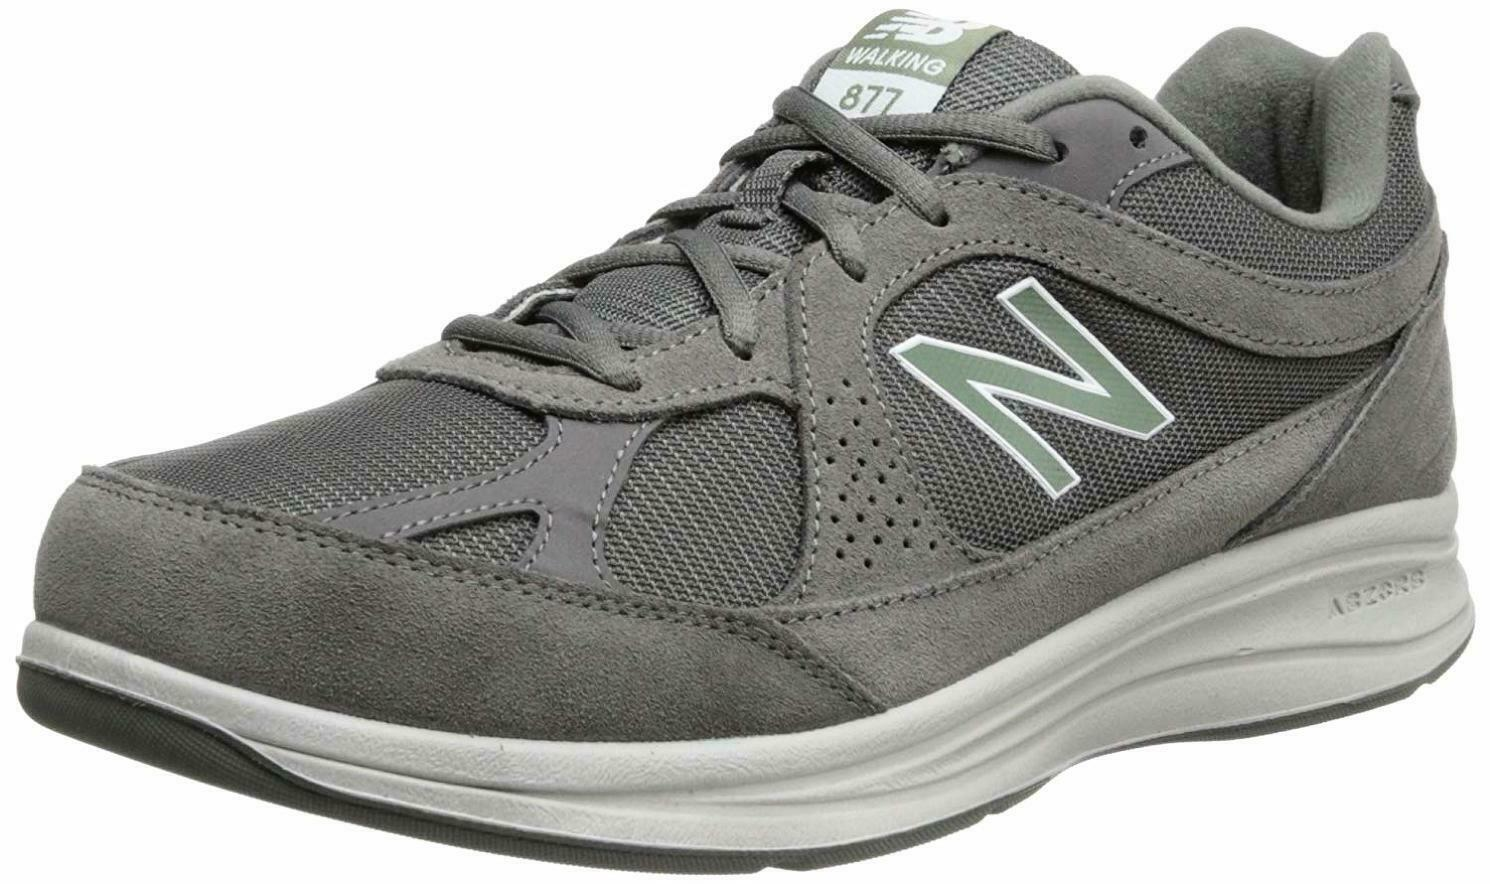 New Balance Men's MW877 Walking shoes